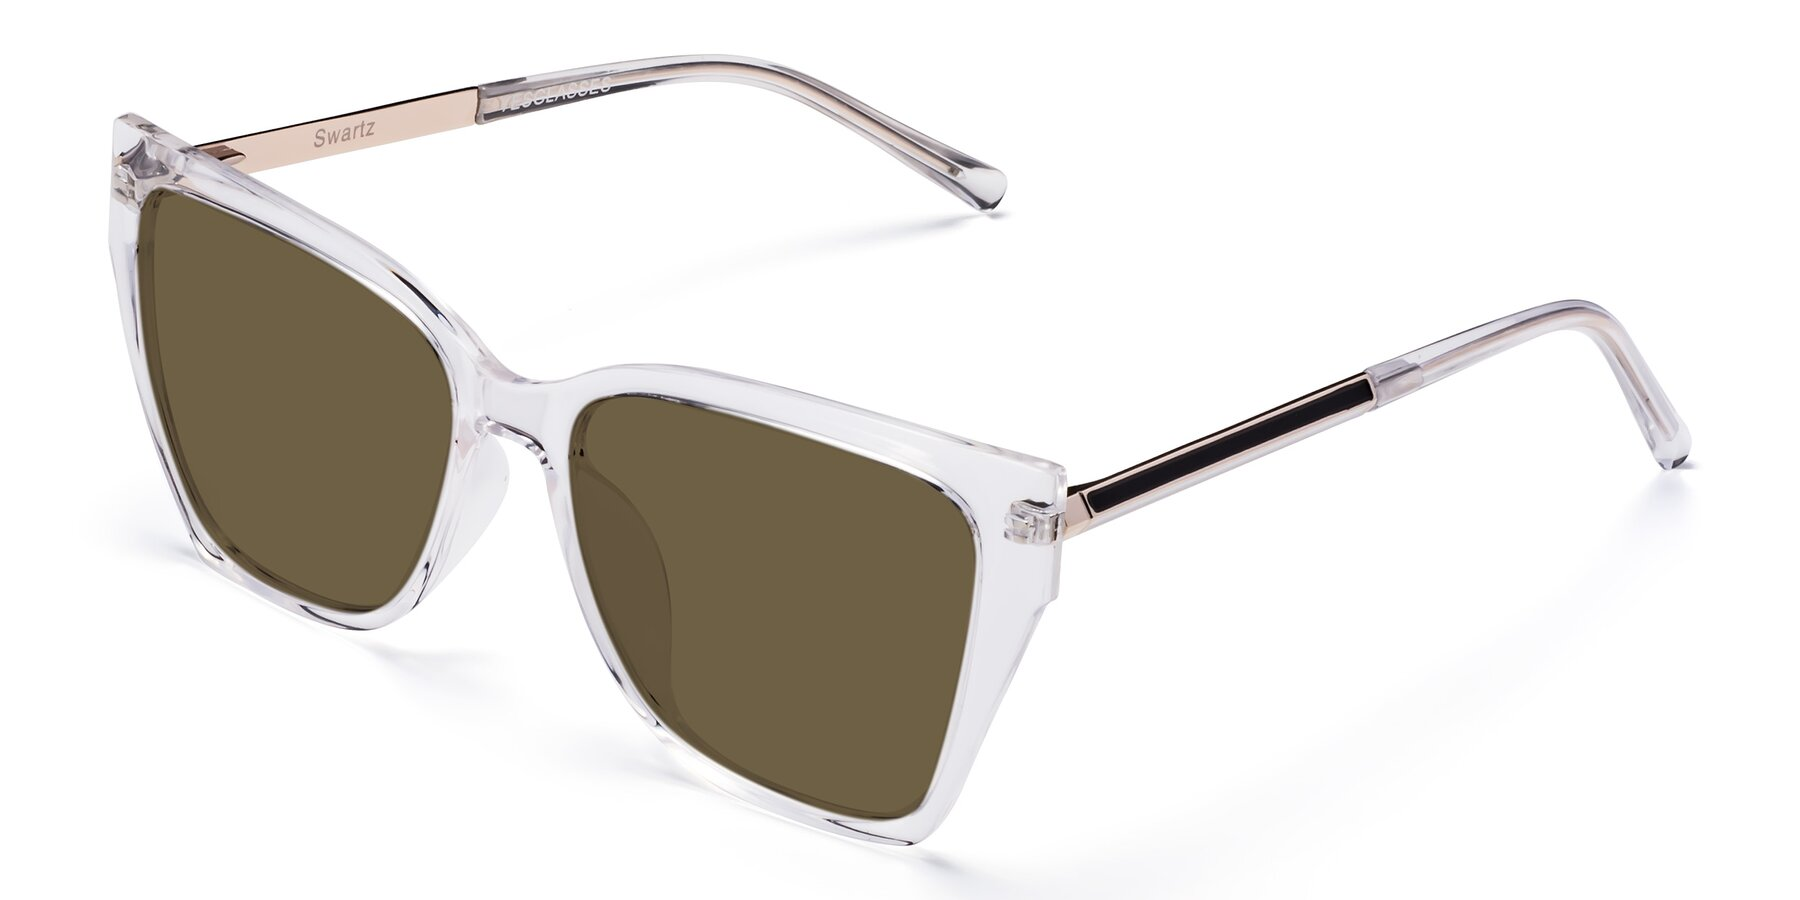 Angle of Swartz in Clear with Brown Polarized Lenses